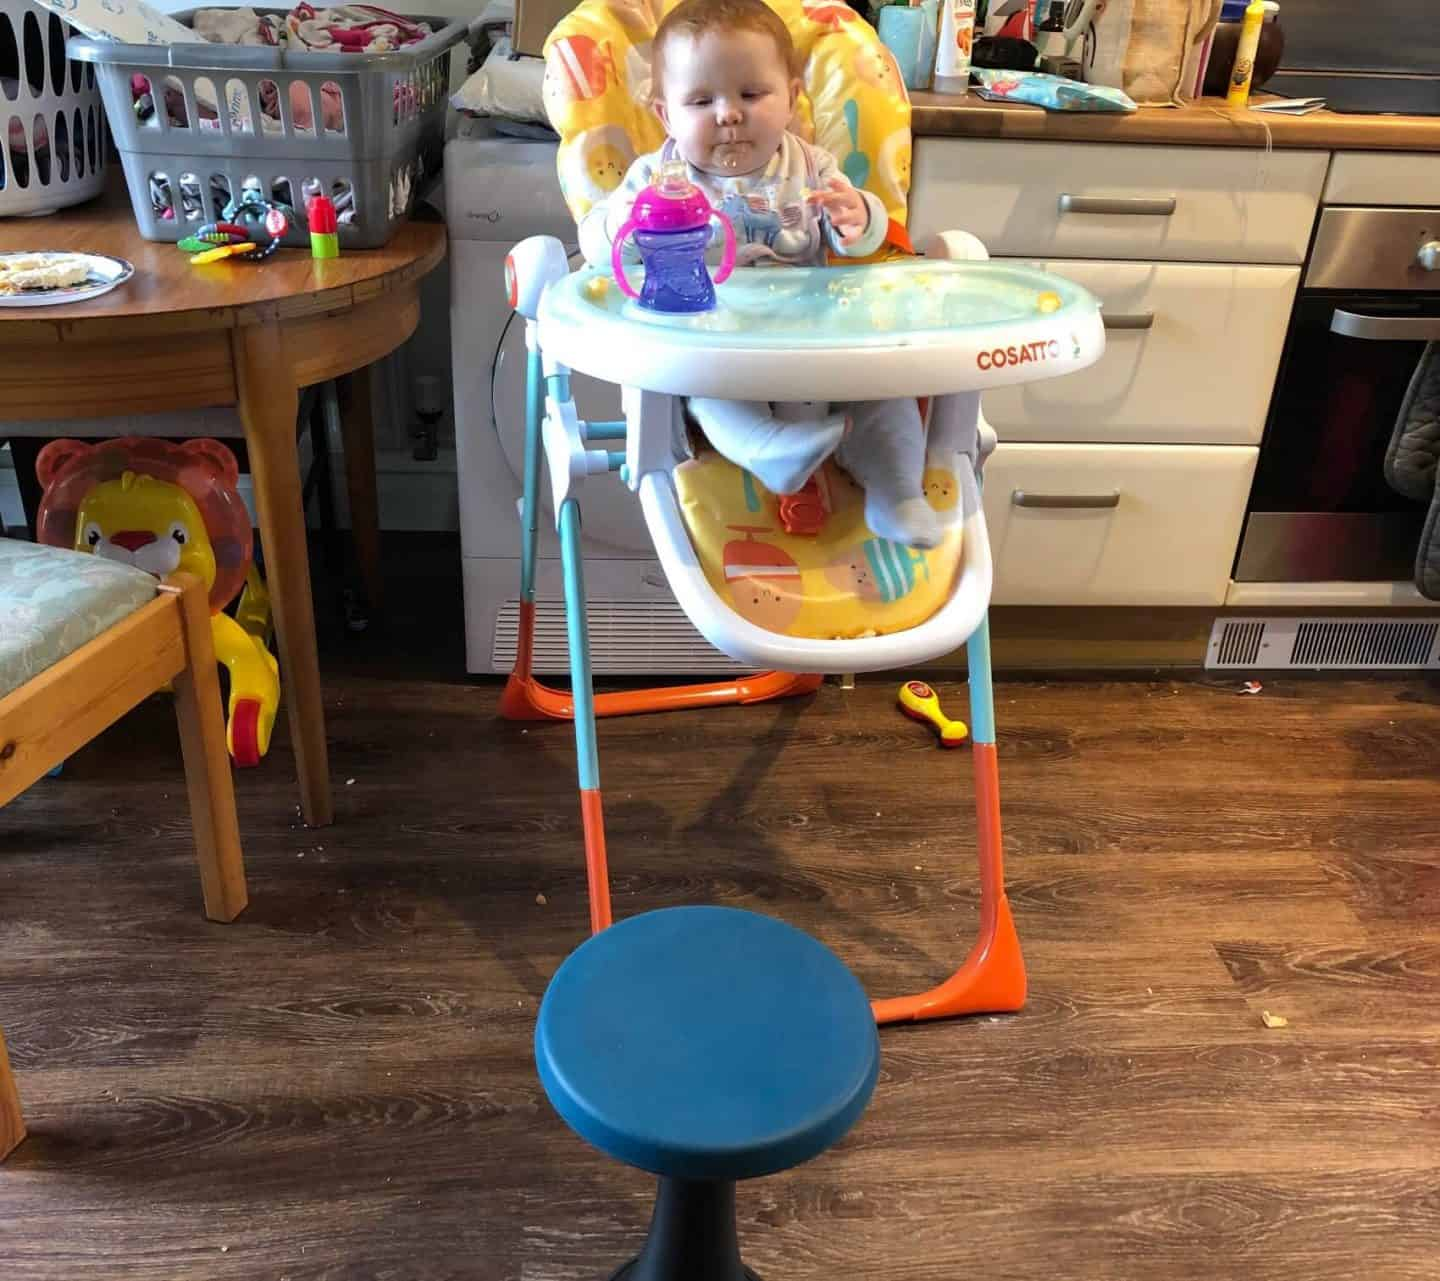 Reviewing The One Leg Stool - feeding the baby